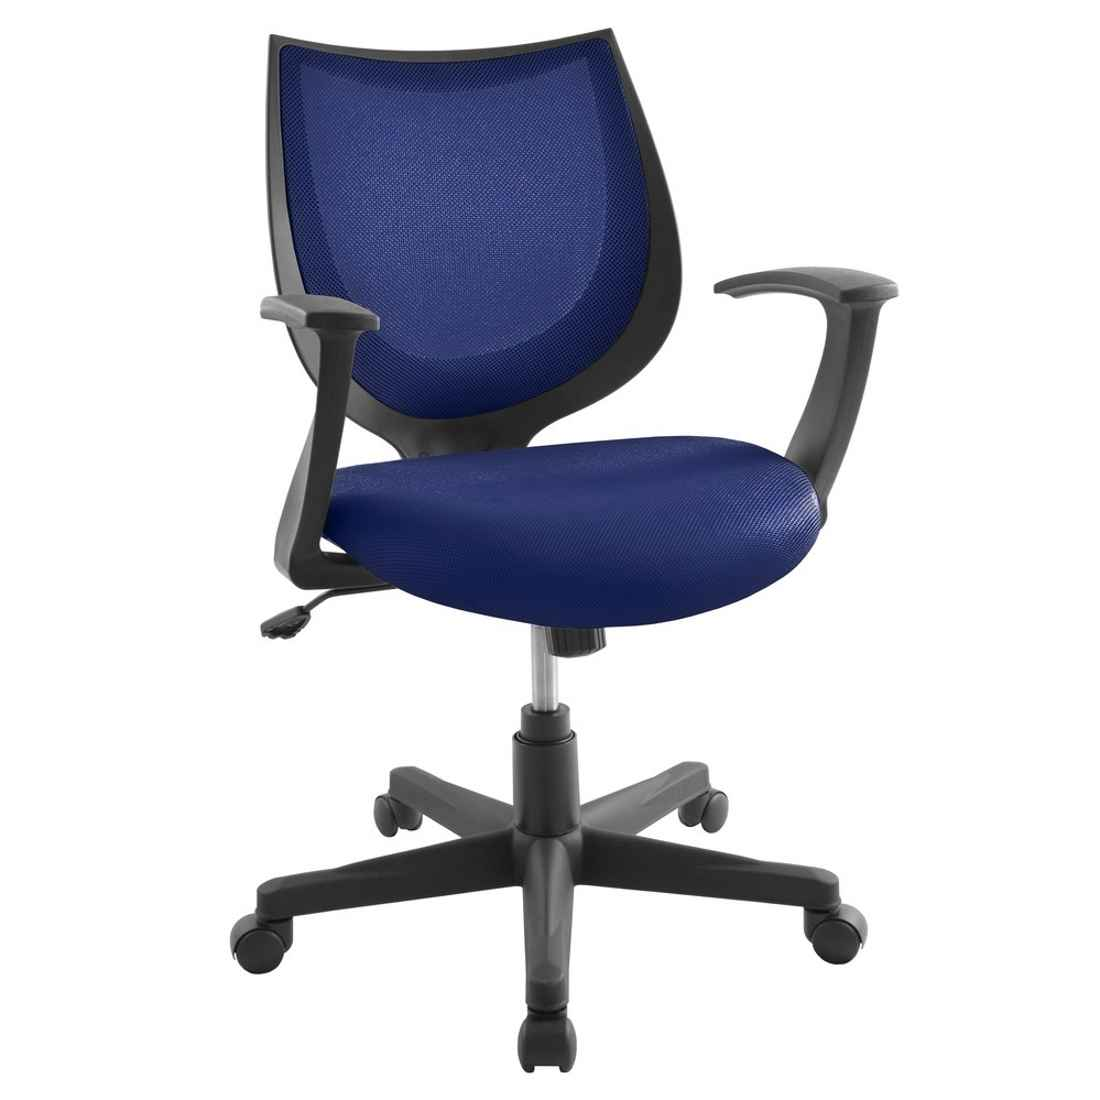 desk chairs office chair mesh blue for home